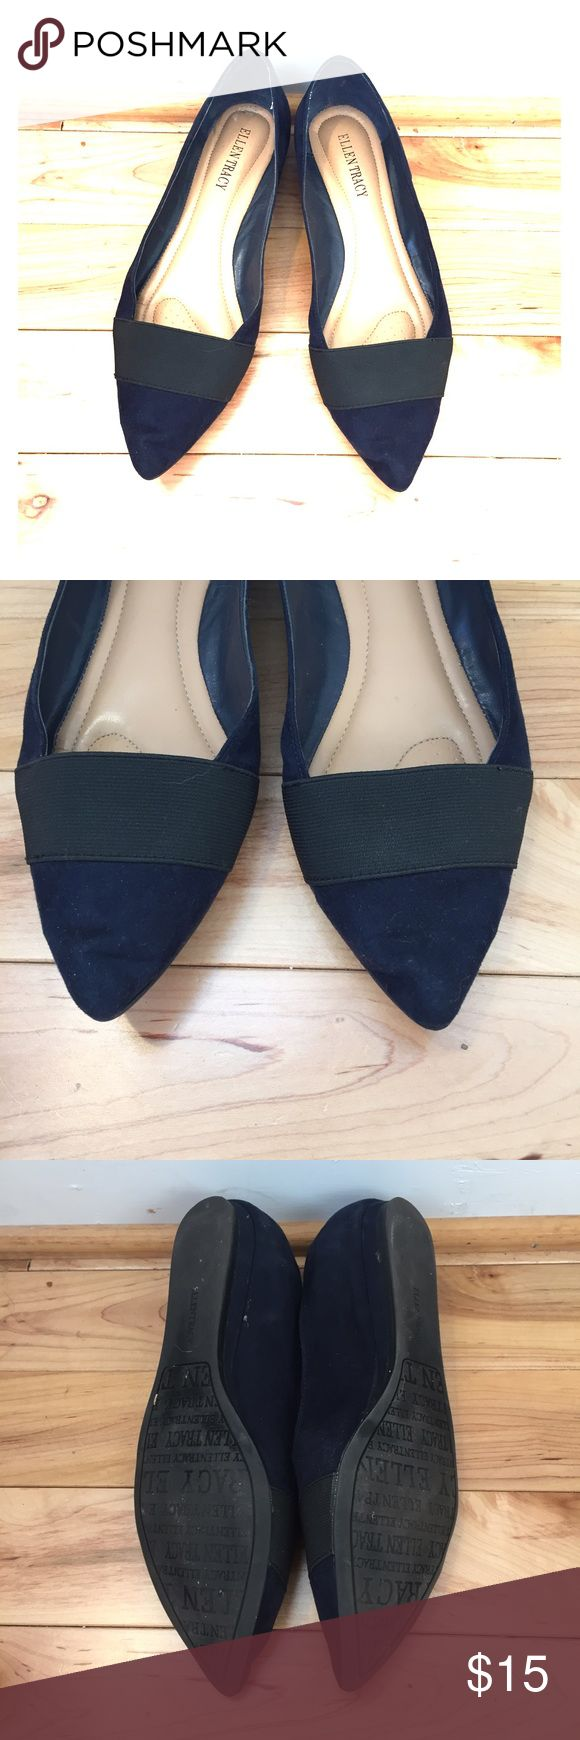 Navy pointed flats w/ black. Career wear Classy navy flats made of a suede like material with black detailing. Great career wear flat. Let me know if you have any questions! Ellen Tracy Shoes Flats & Loafers